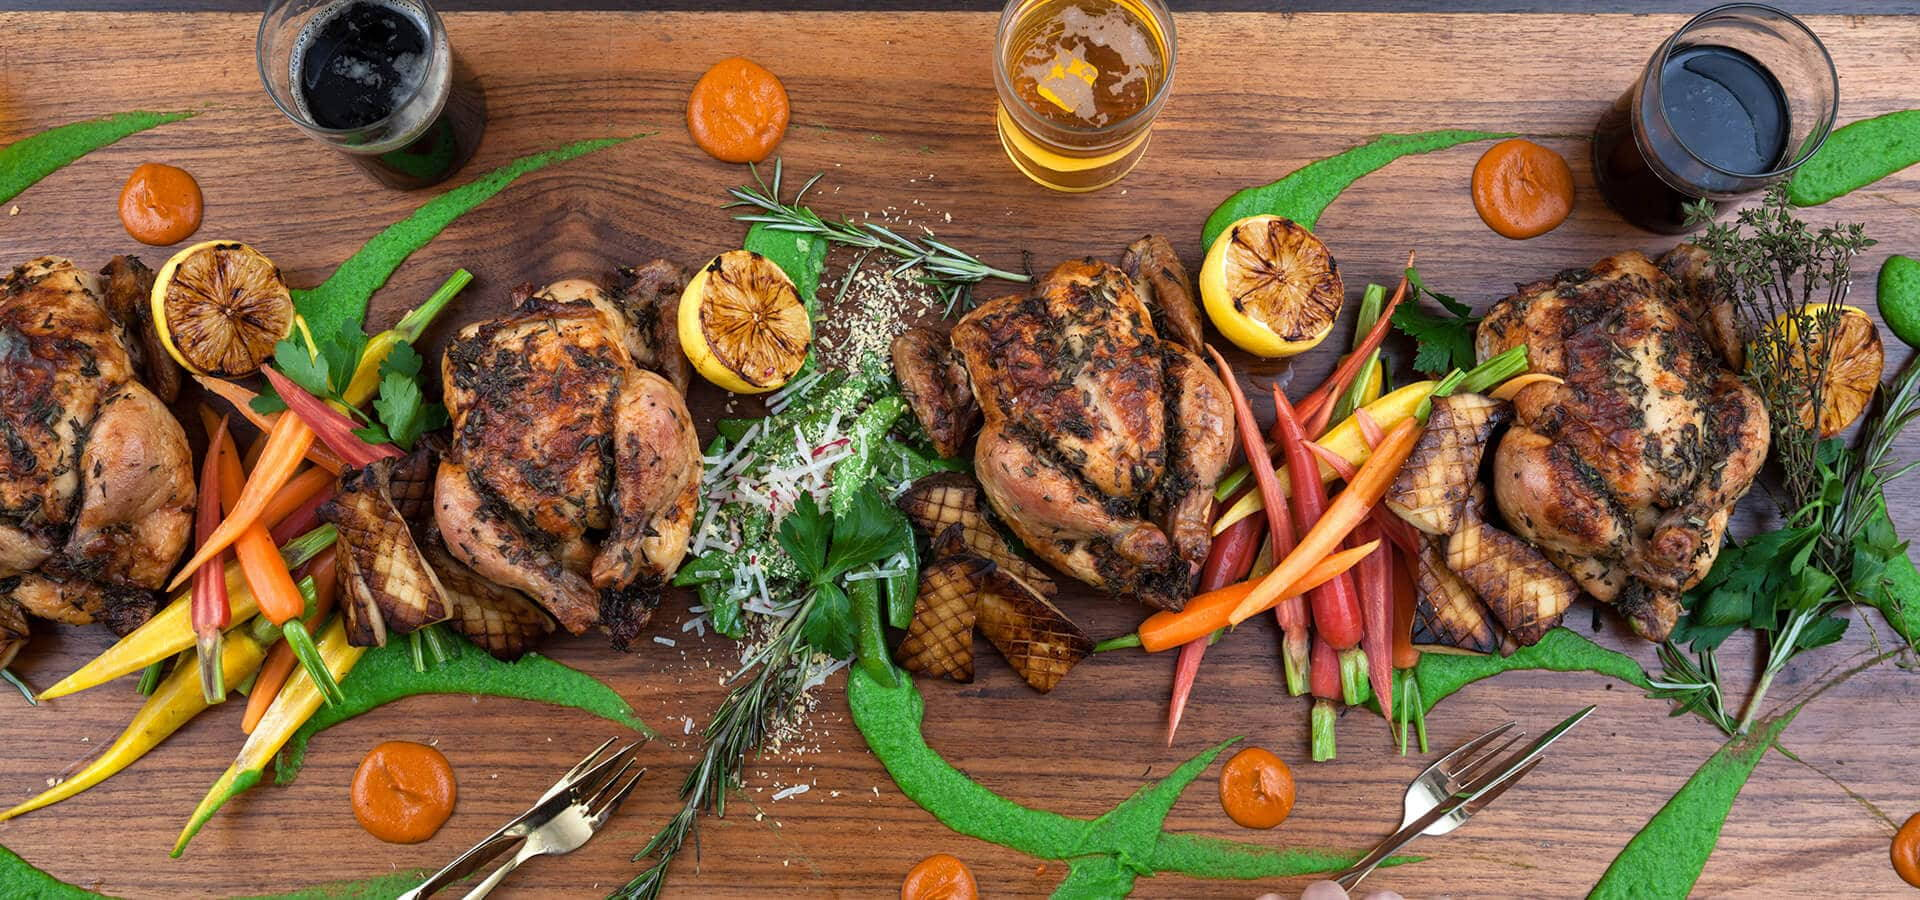 Hero image for 2018 Fall Catering Trends from Toronto's Top Catering Companies!